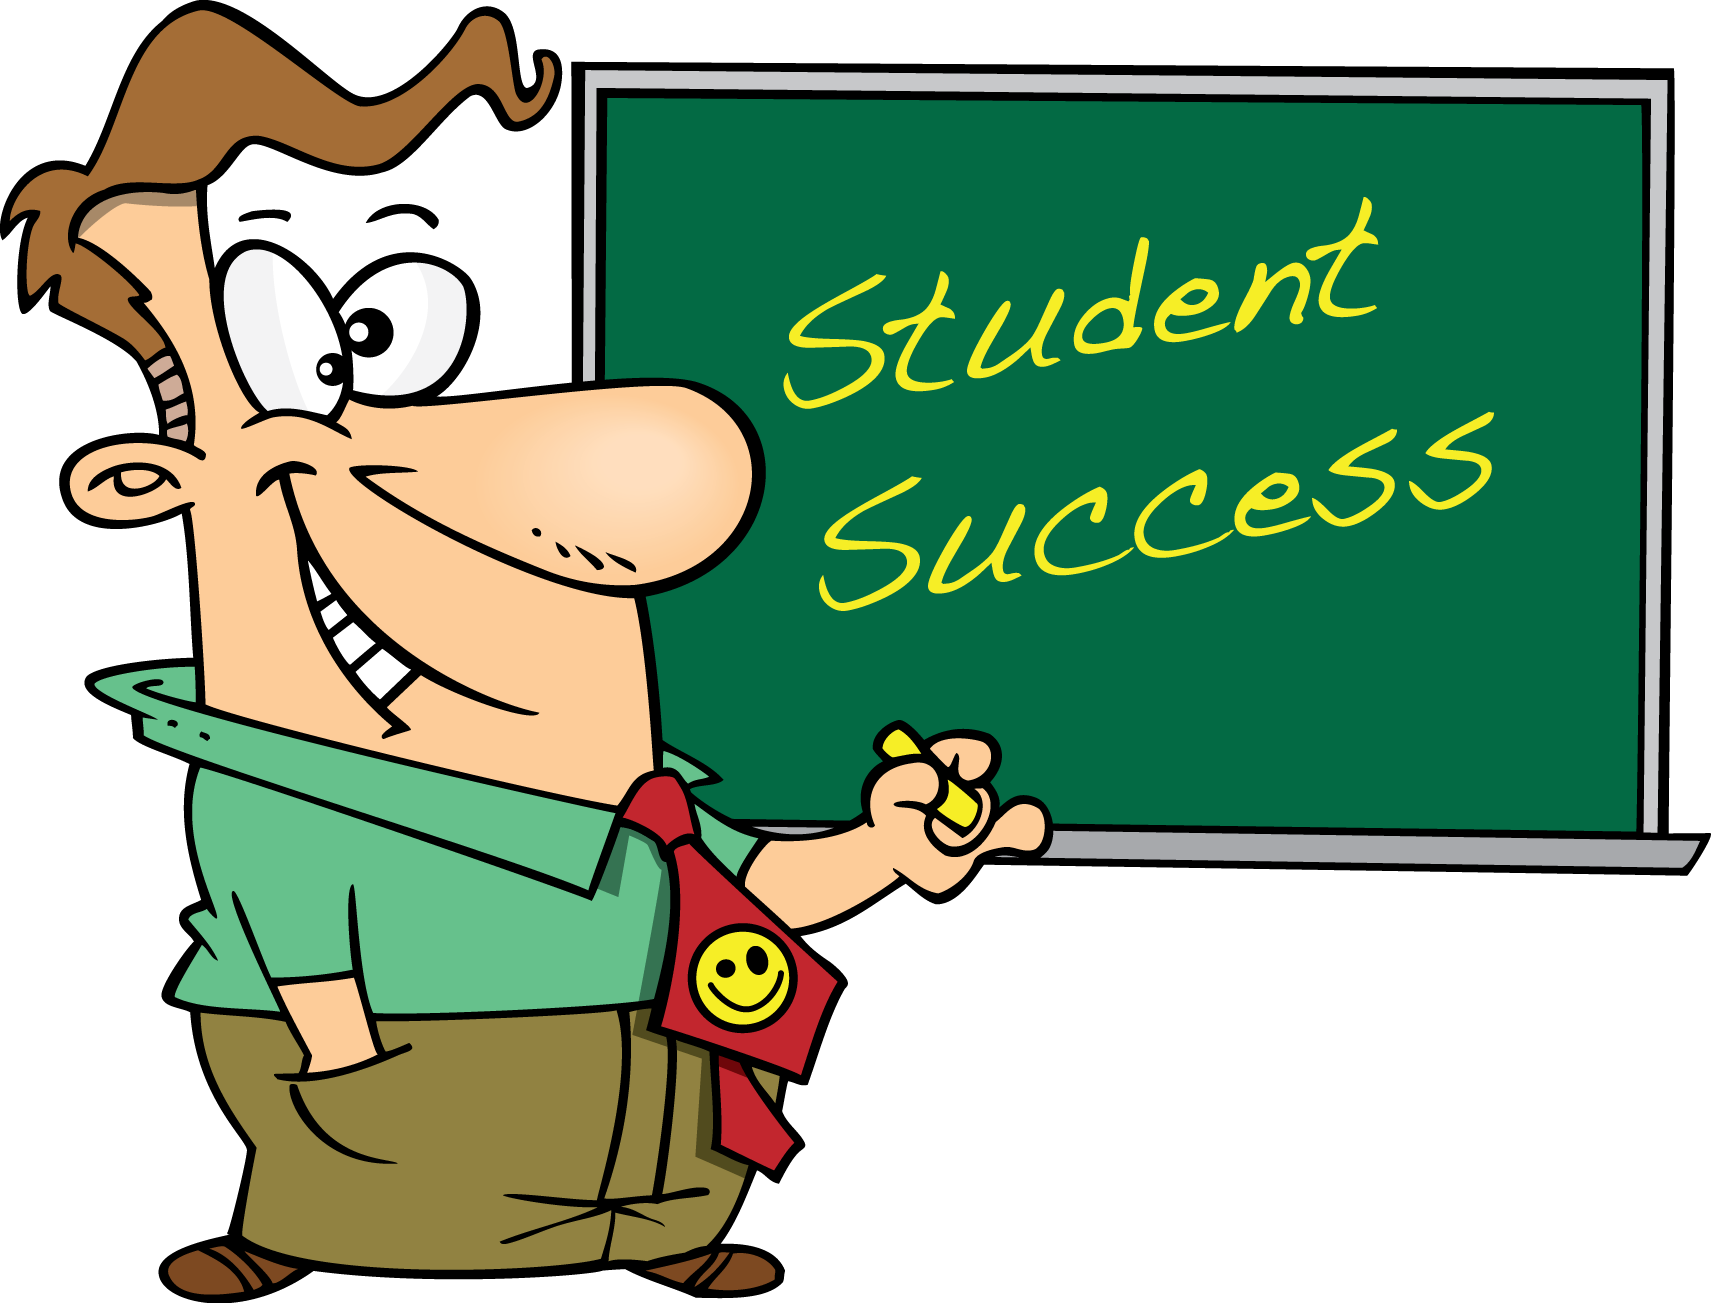 Winning clipart student success Success Success Concise Learning™ Student